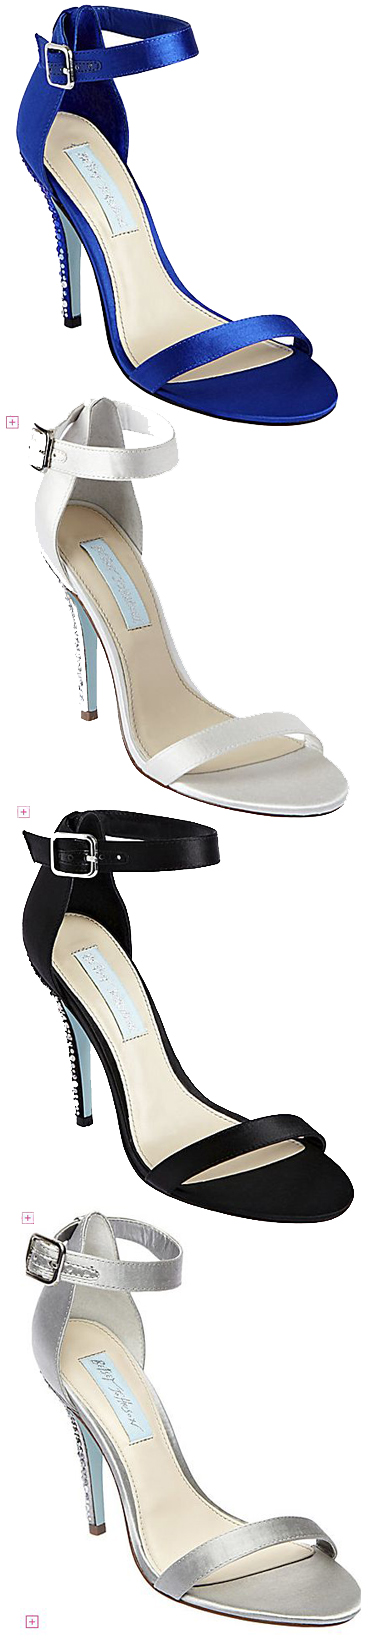 SB BELLS womens evening high ankle strap